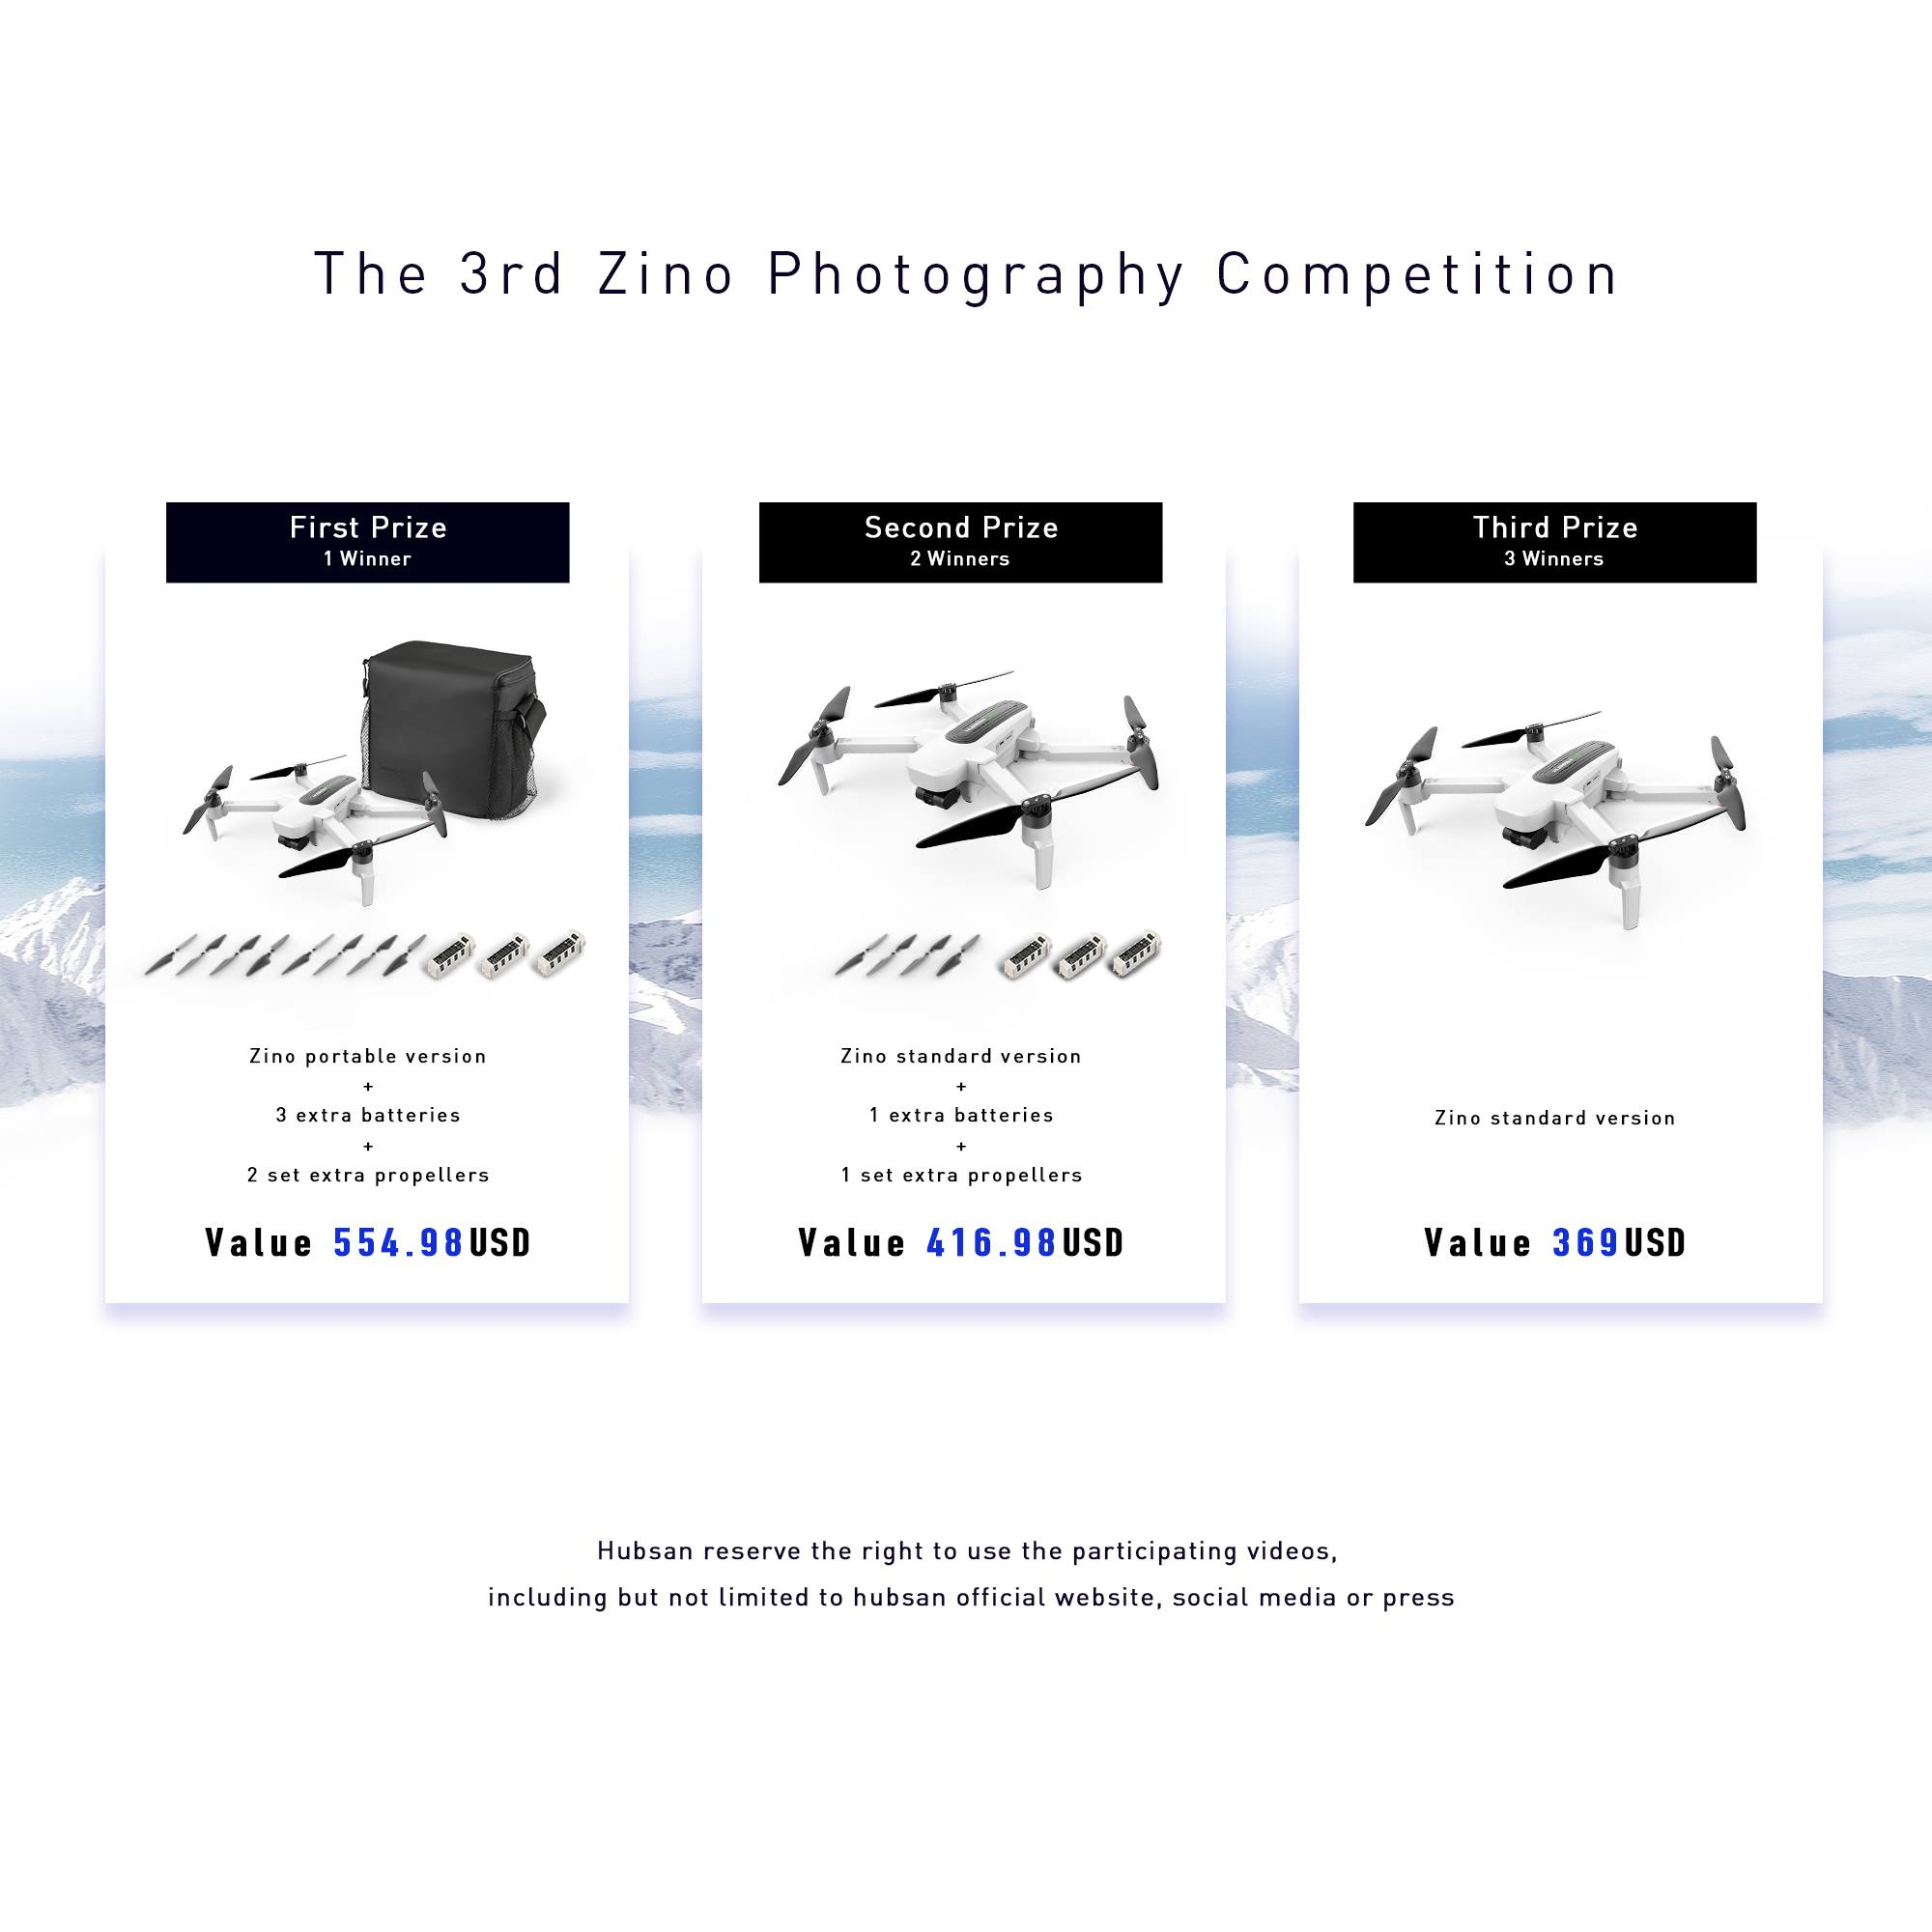 The 3rd ZINO Photography Competition Winners First Prize Winner www.tomtop.com Second Prize Winners www.tomtop.com